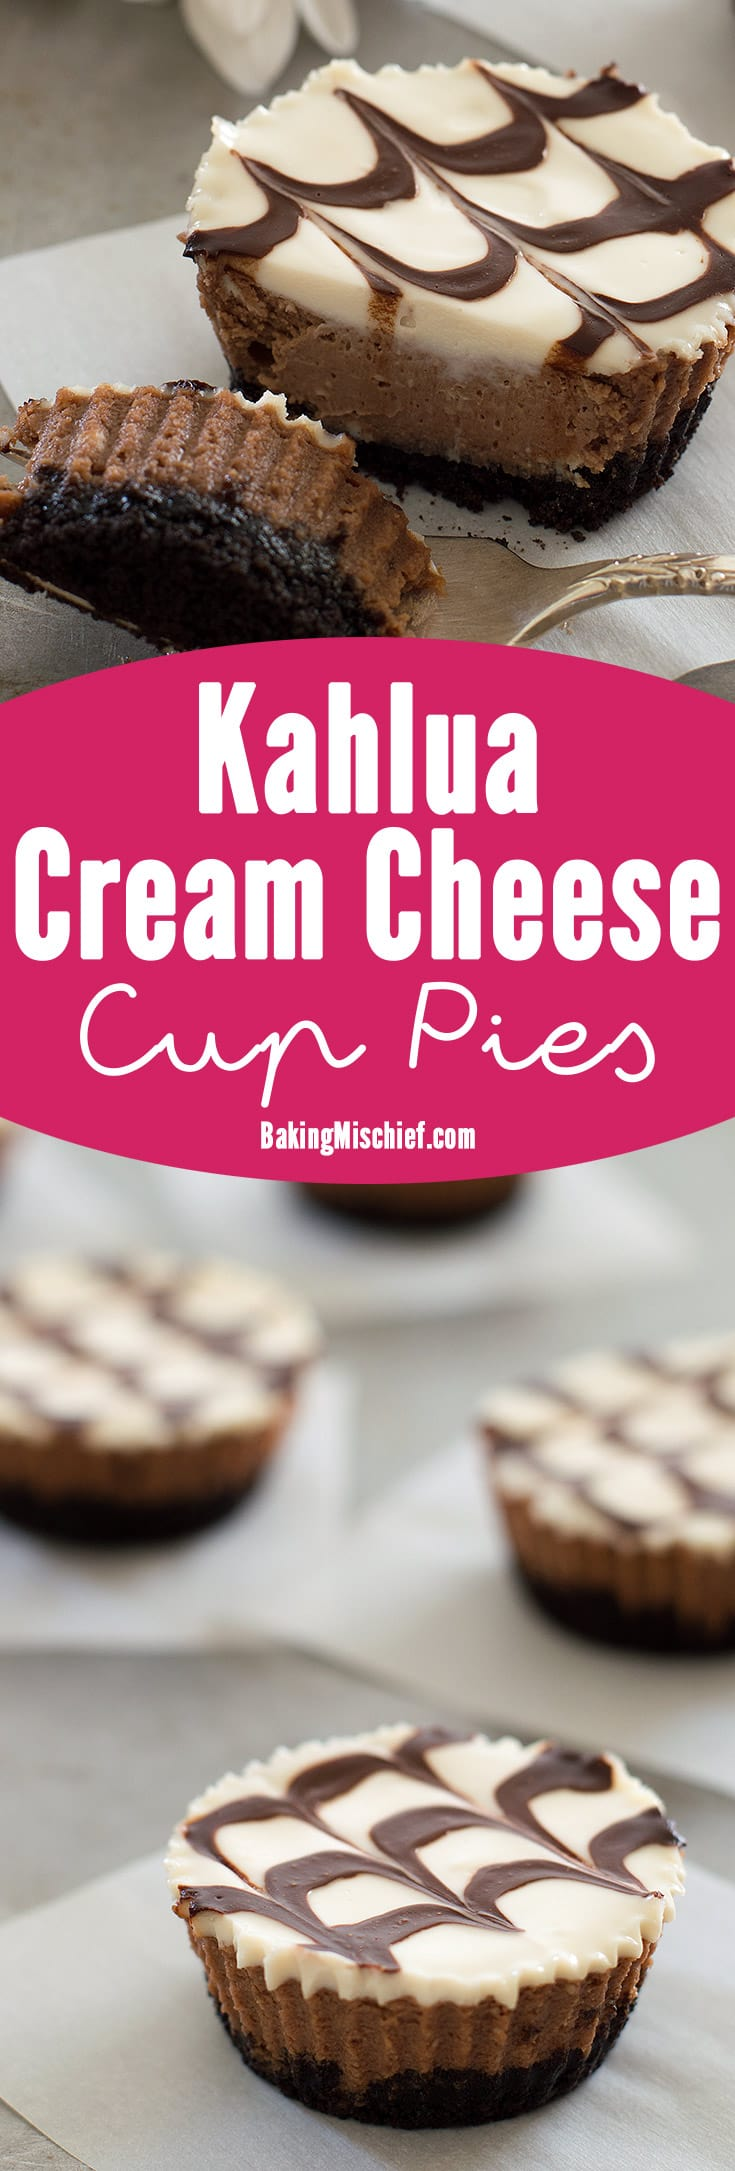 Mini mocha and Kahlua cheesecakes with a crunchy Oreo cookie base, cool sour cream topping, and fudge sauce. Recipe includes small-batch instructions and nutritional information. From BakingMischief.com